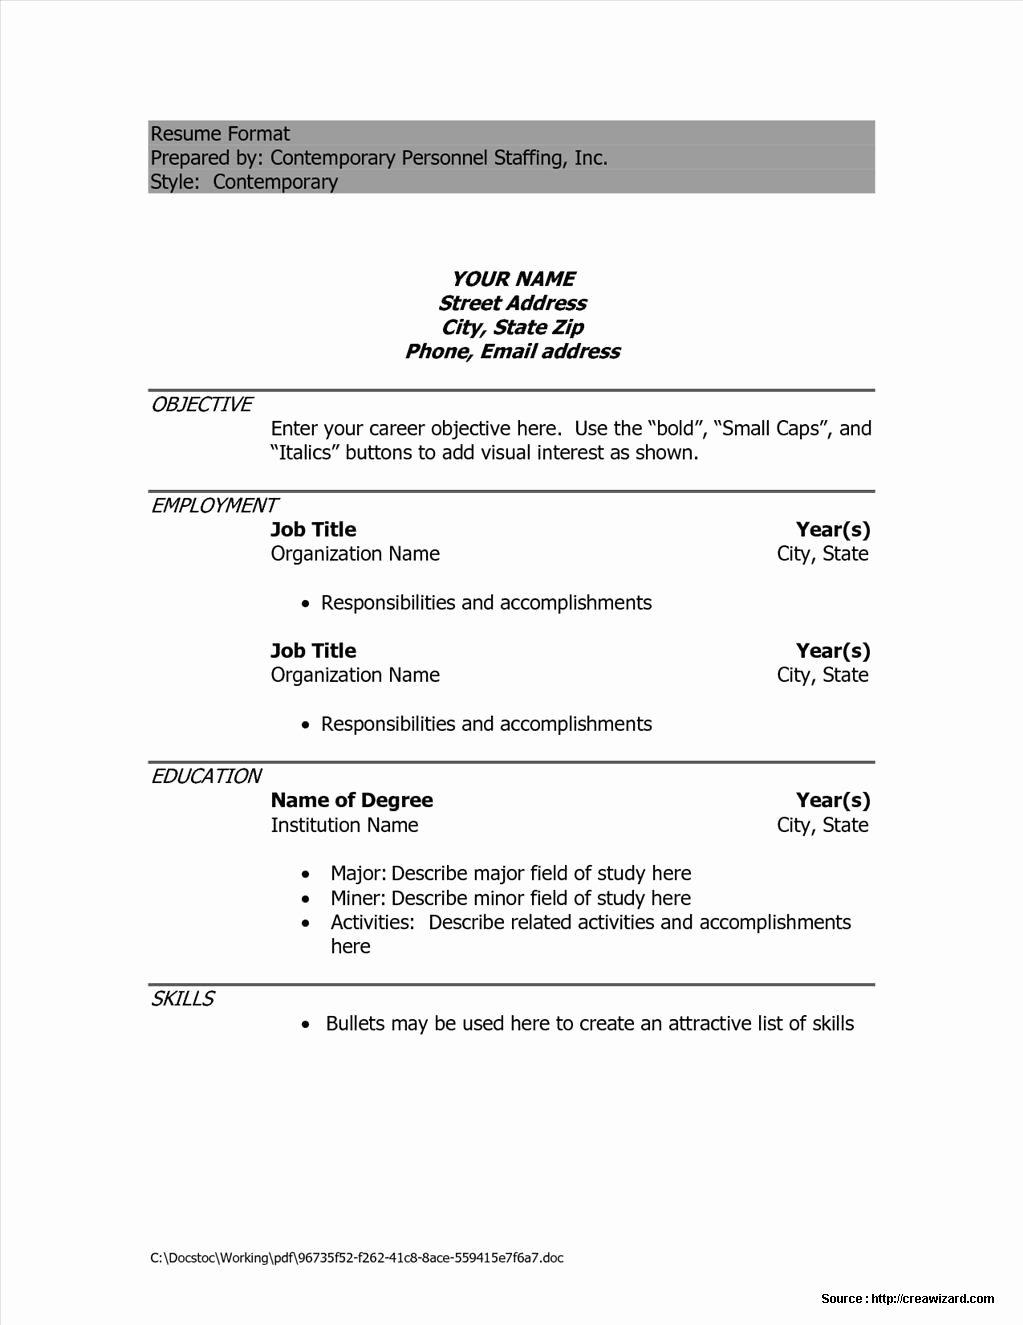 Simple Resume format Sample Doc Resume Resume Examples